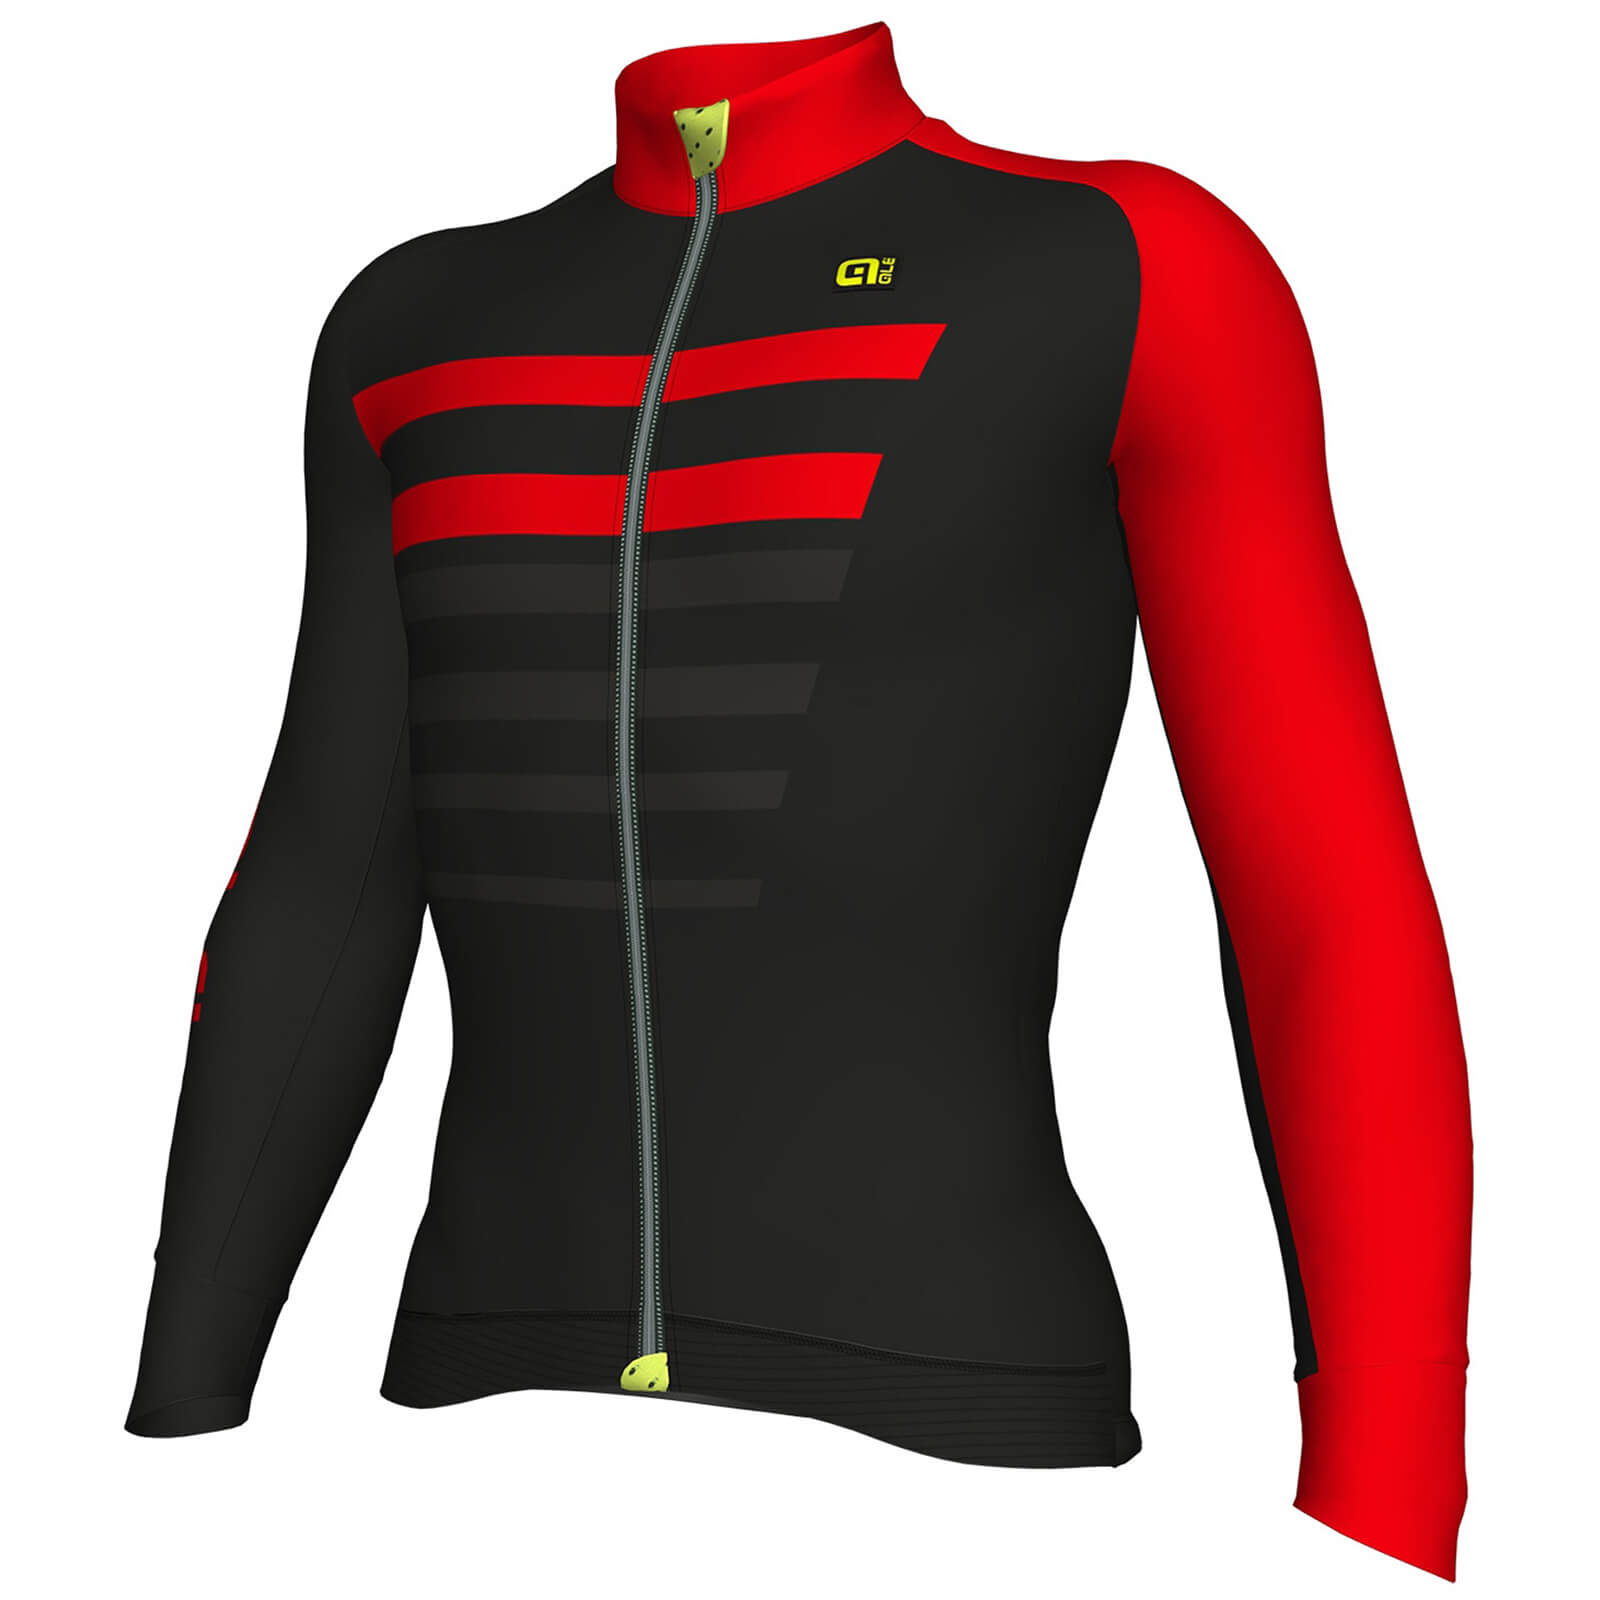 Alé Piuma Jersey - Black/Red